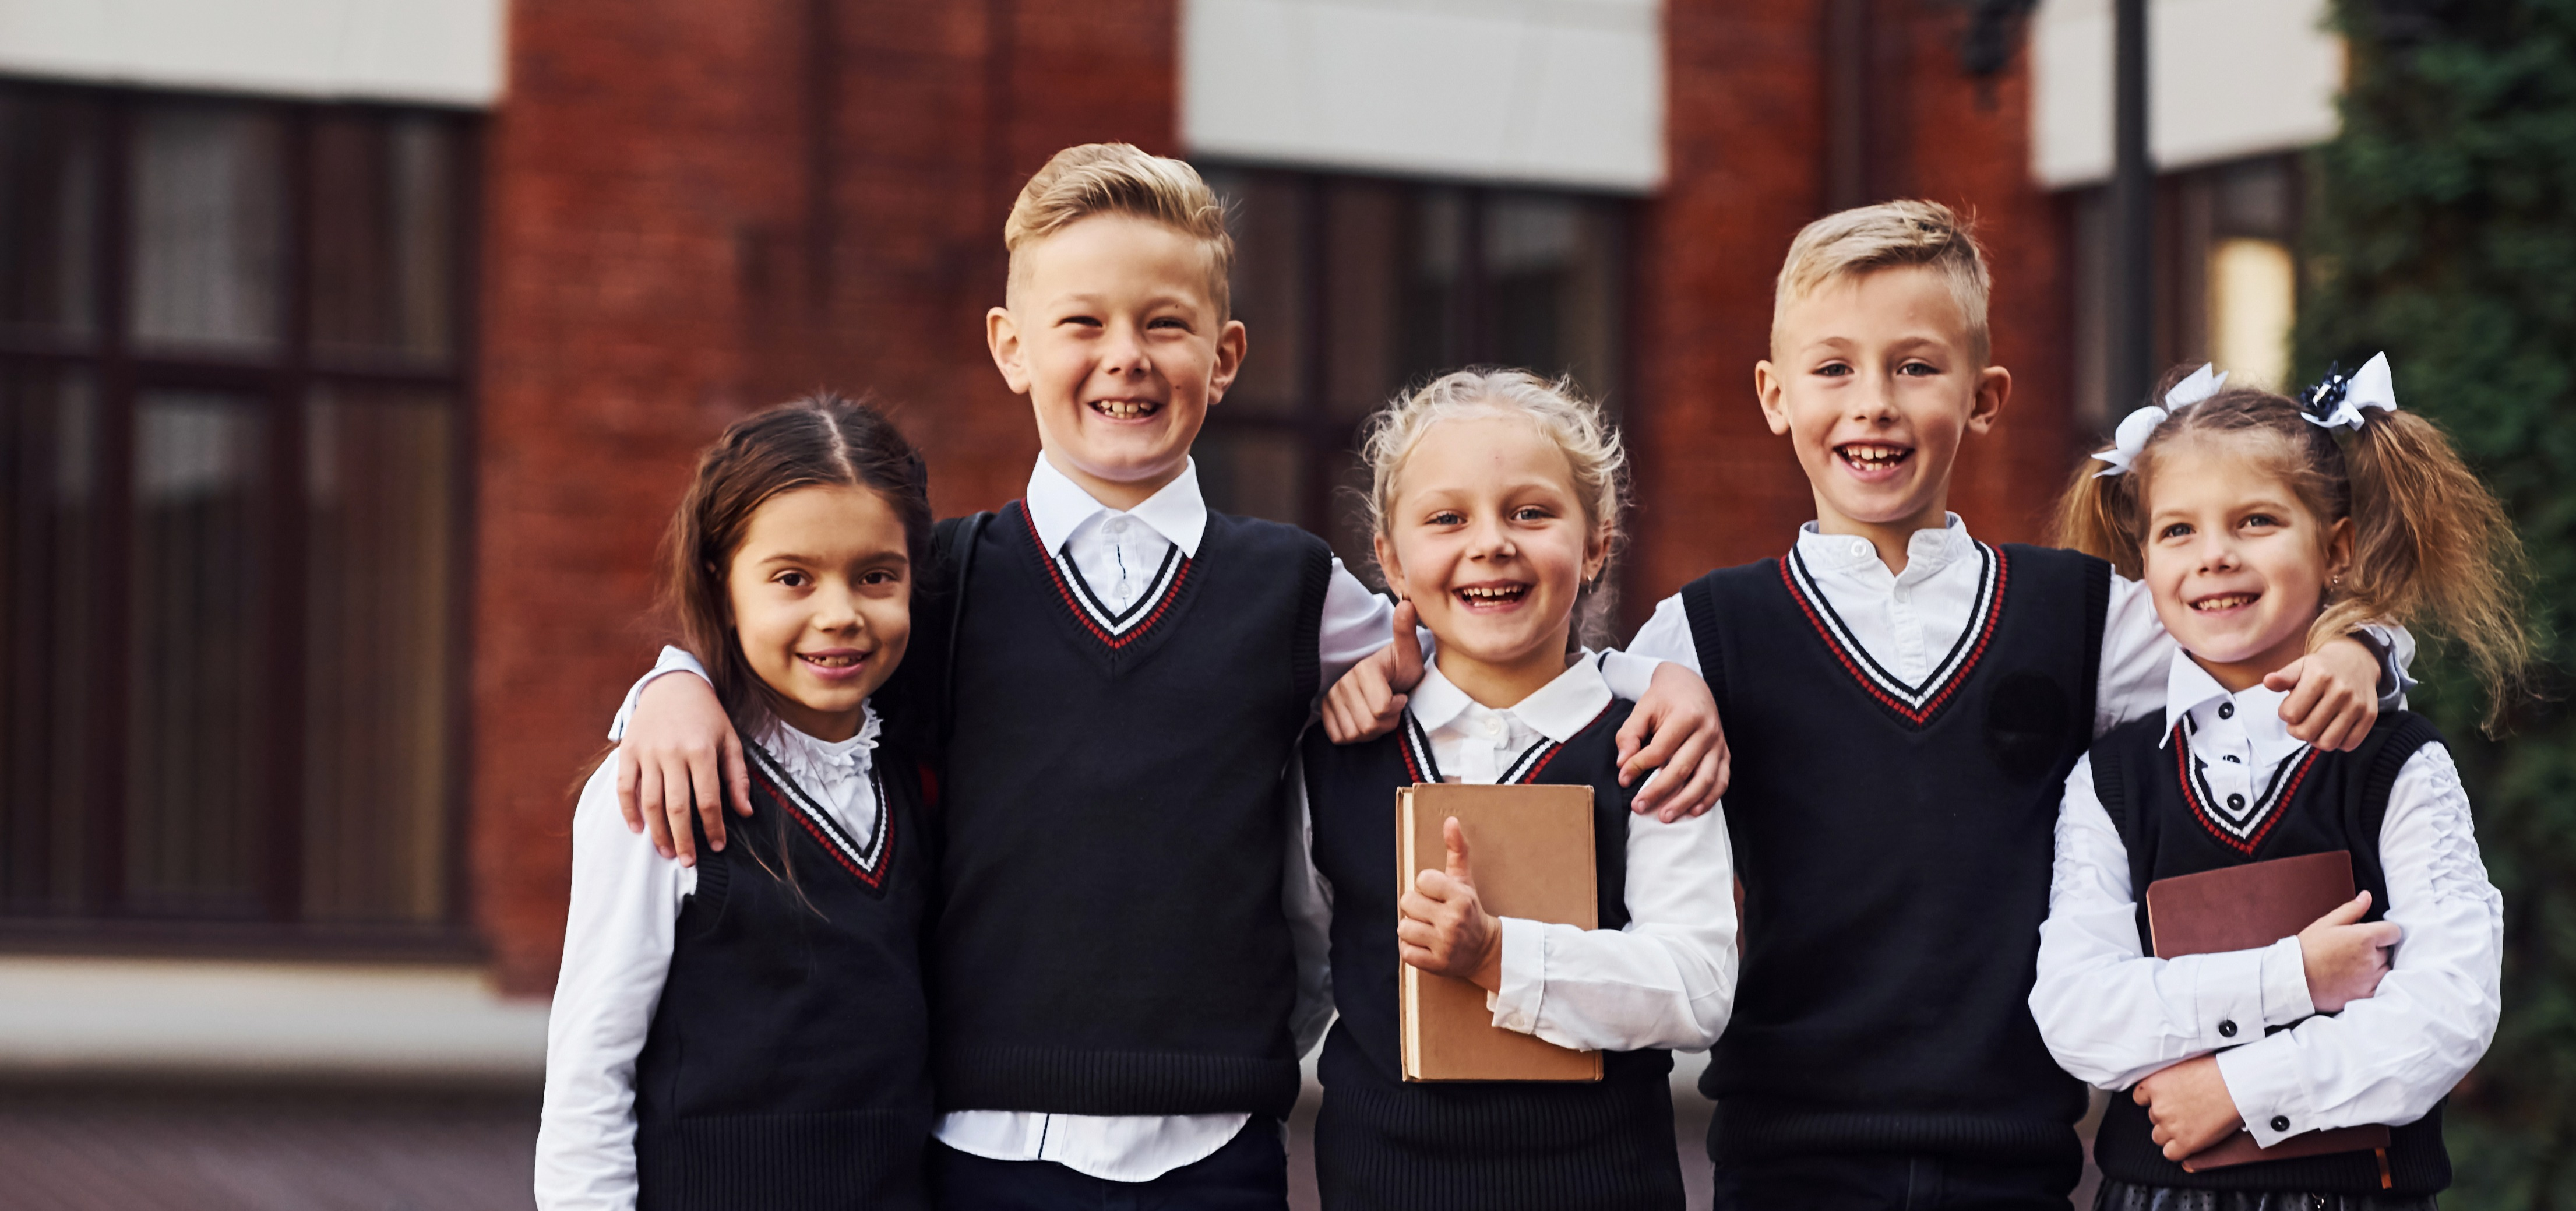 group-of-kids-in-school-uniform-that-is-outdoors-t-XXWHJQS-1